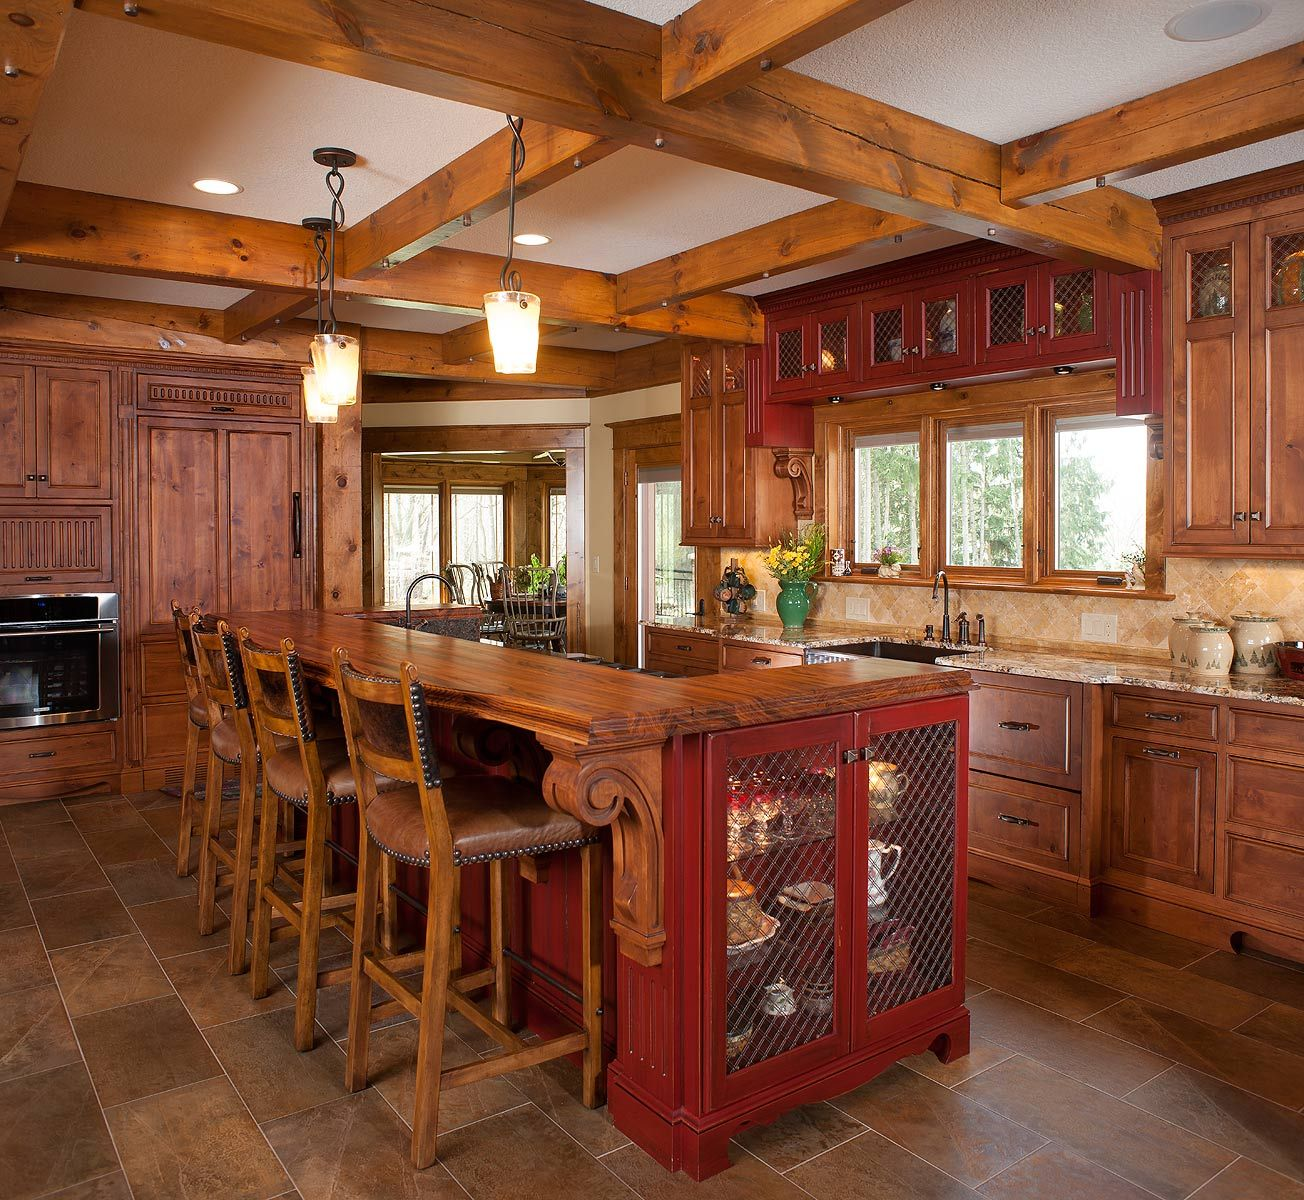 mullet cabinet gallery wood kitchen island rustic kitchen island rustic kitchen design on kitchen decor themes rustic id=75123